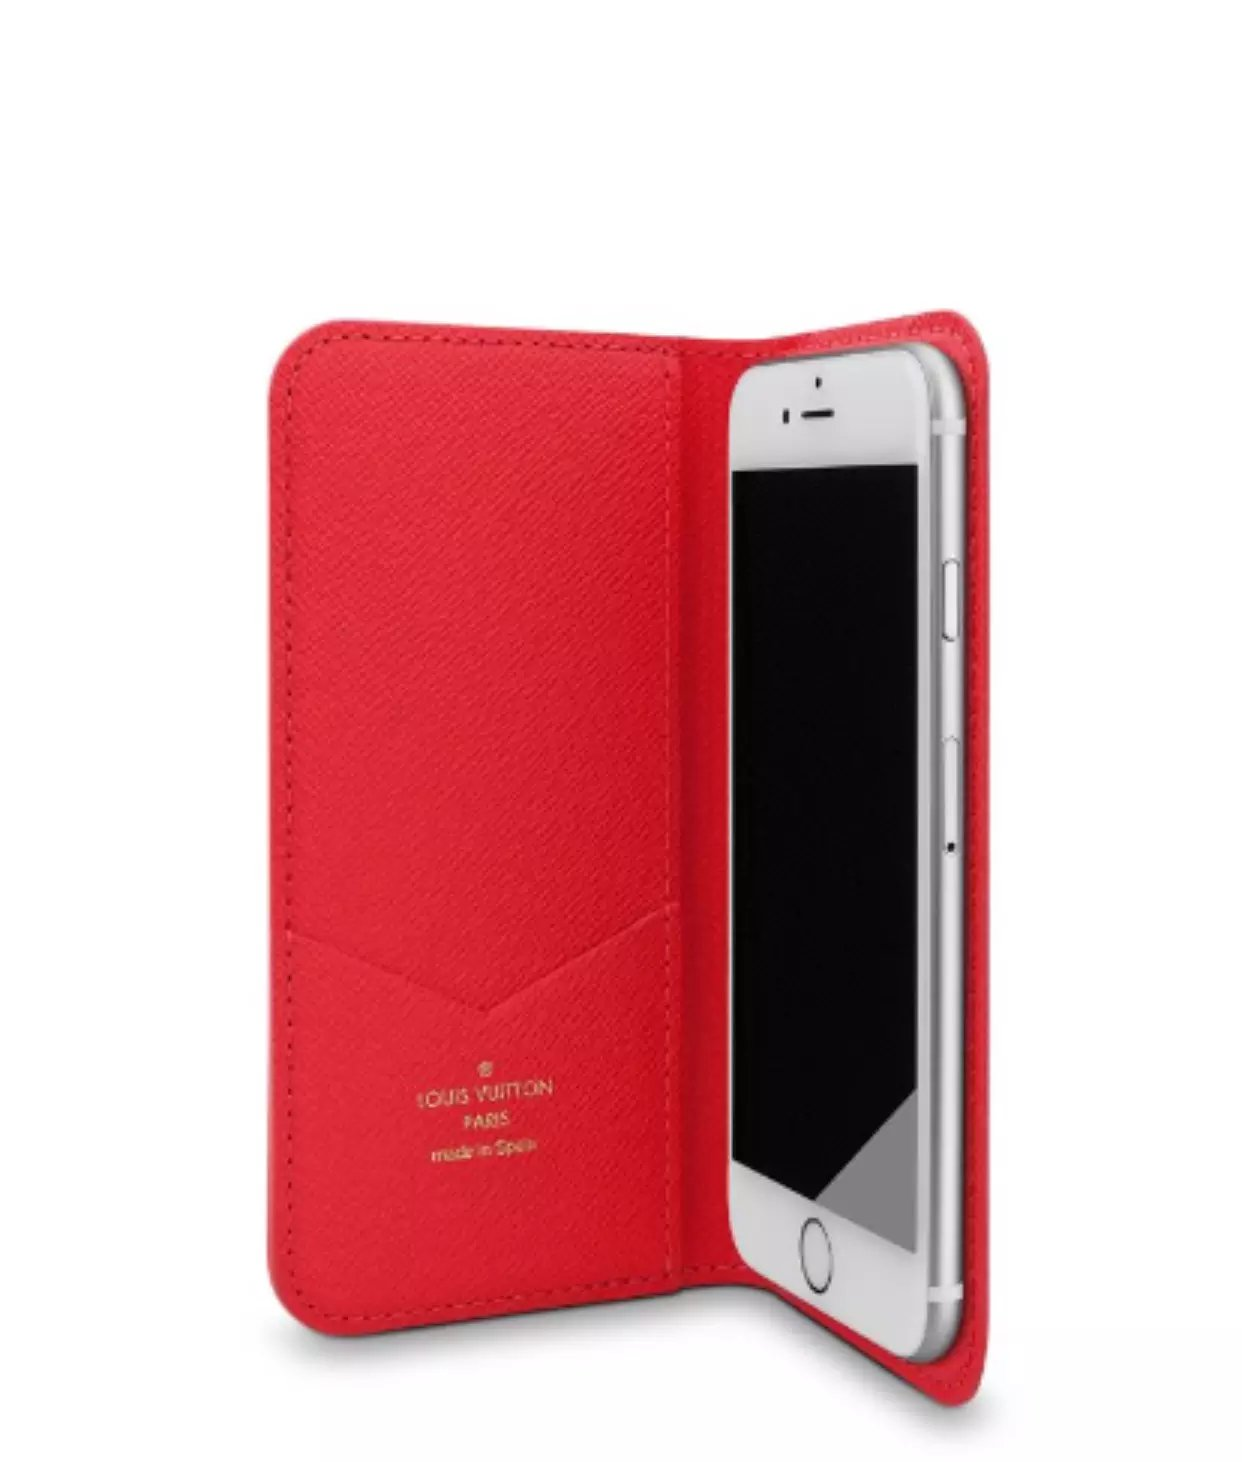 iphone case bedrucken iphone silikonhülle selbst gestalten Louis Vuitton iphone6 hülle iphone schale iphone 6 tasche filz transparente hülle iphone 6 iphone 6 handy hülle htc one handyhülle handy hülle iphone